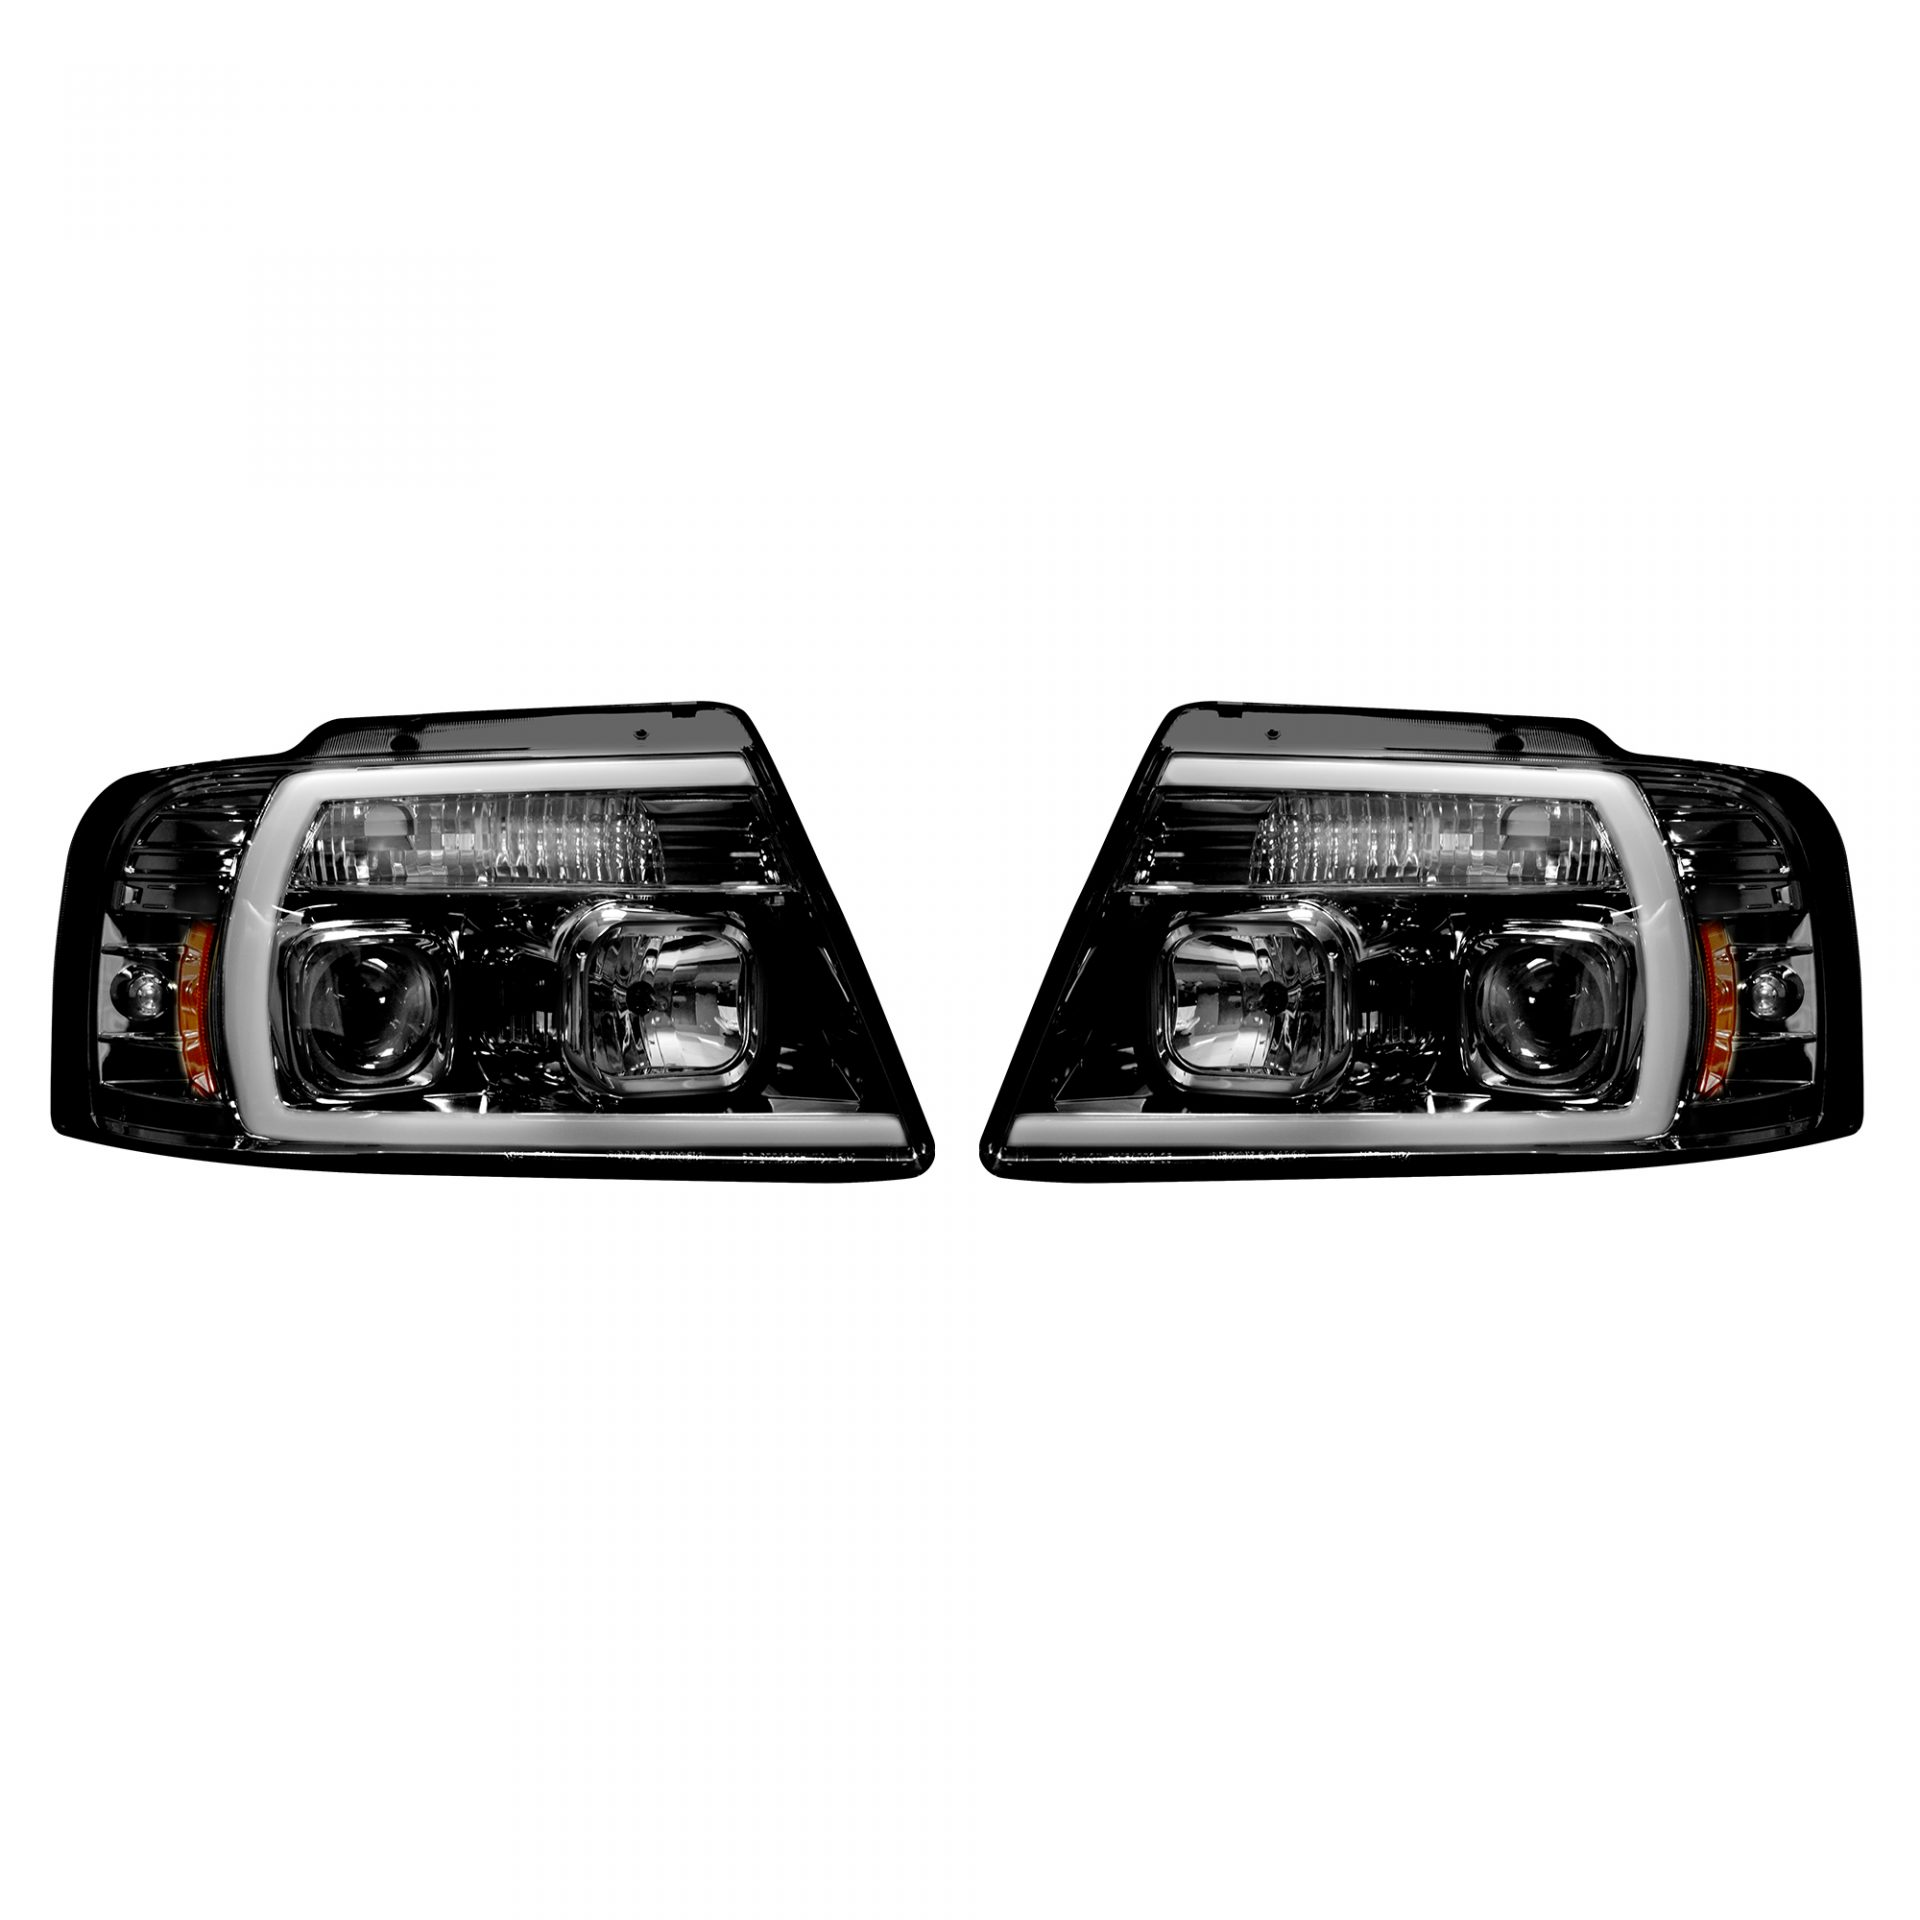 Recon 264198bkc Ford F150 04 08 Projector Headlights W Ultra High Power Smooth Oled Halos Drl Smoked Black